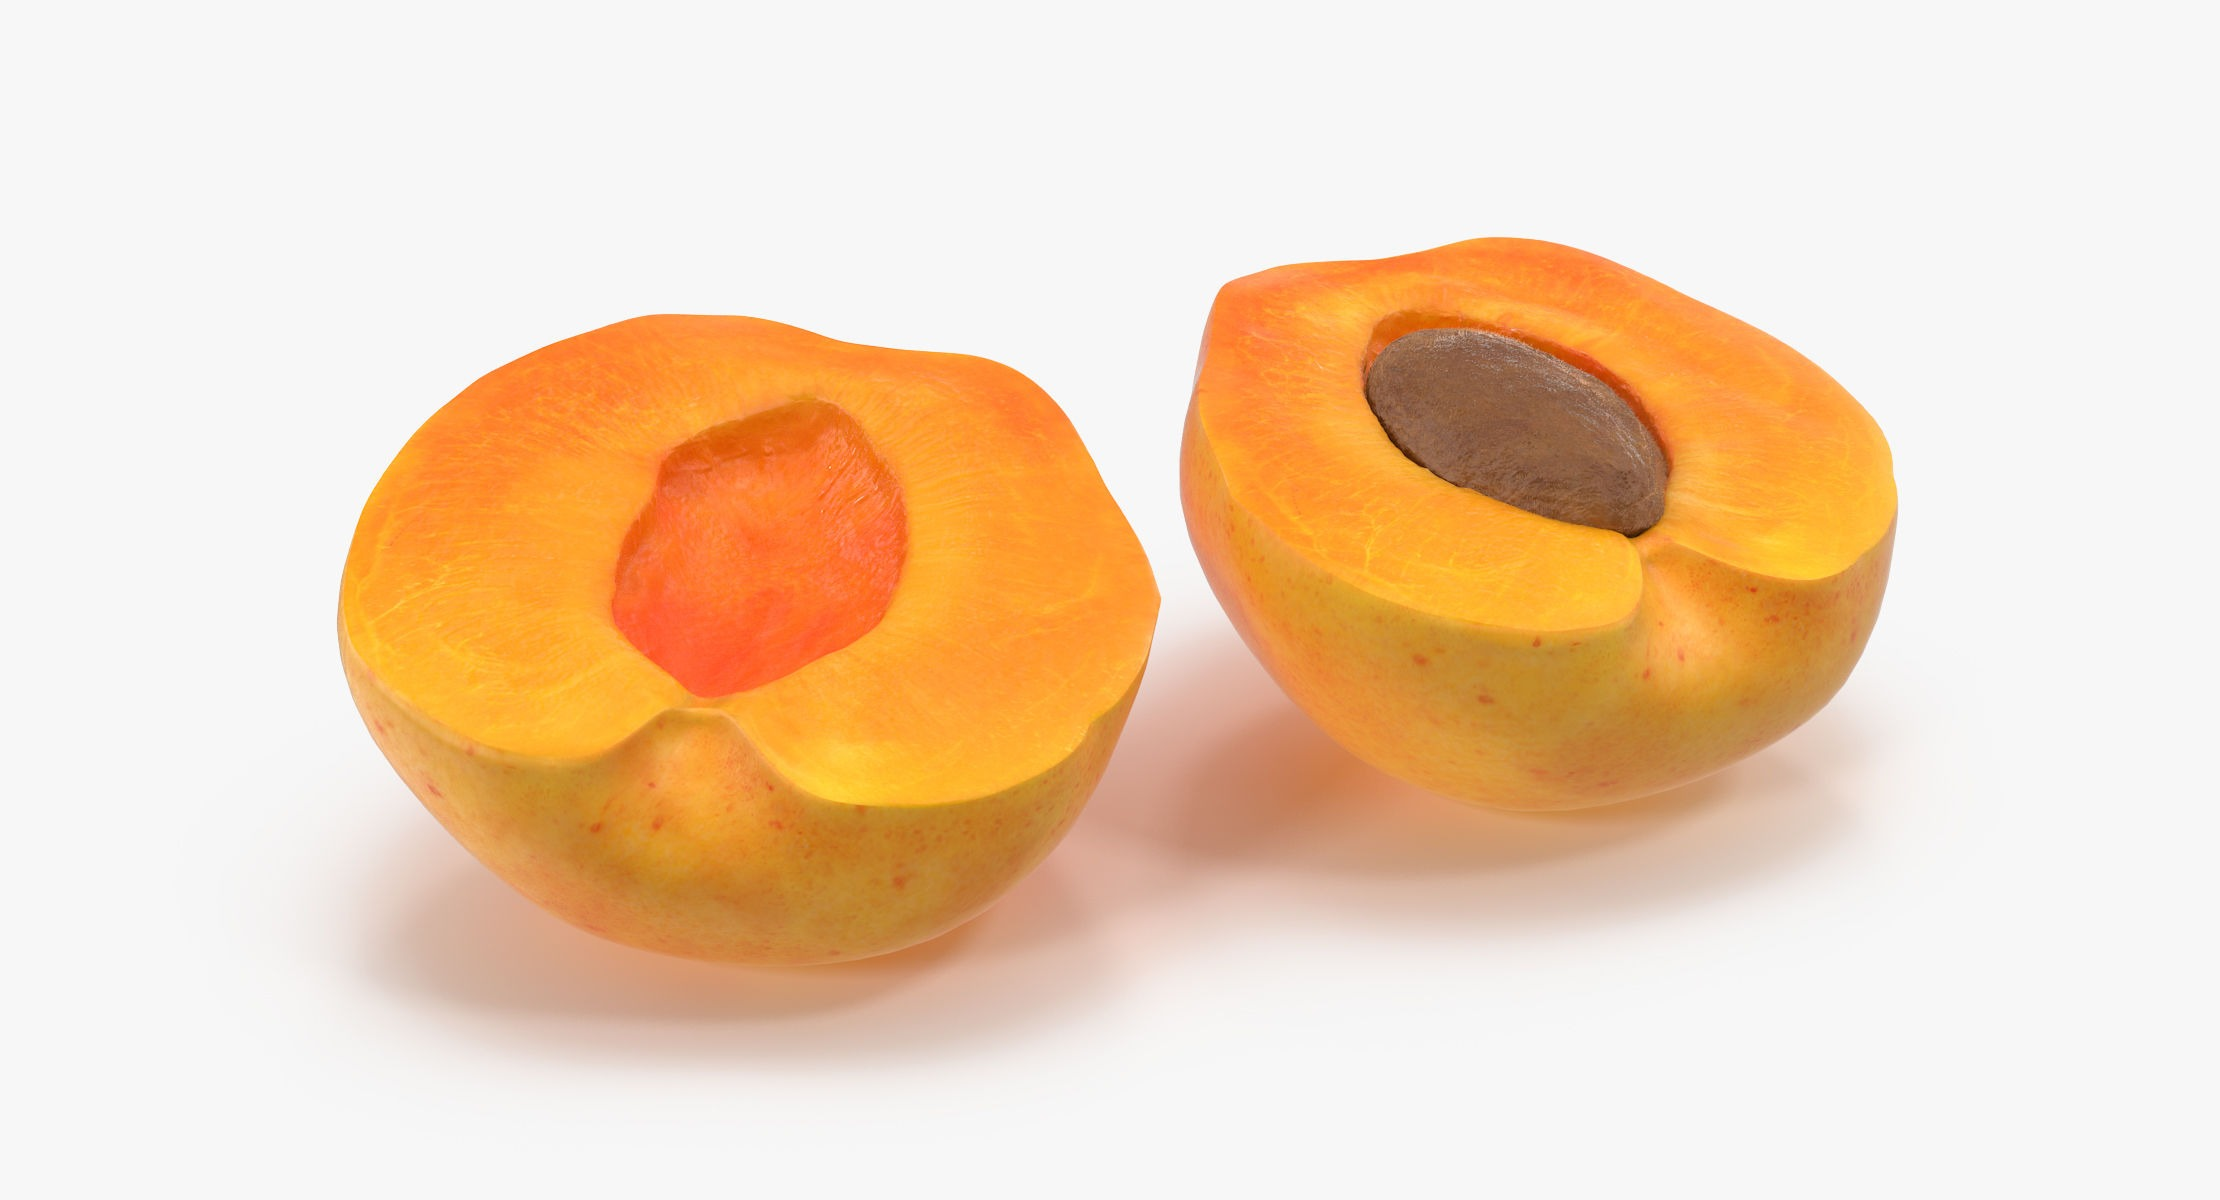 Apricot Cross Section 03 - reel 1